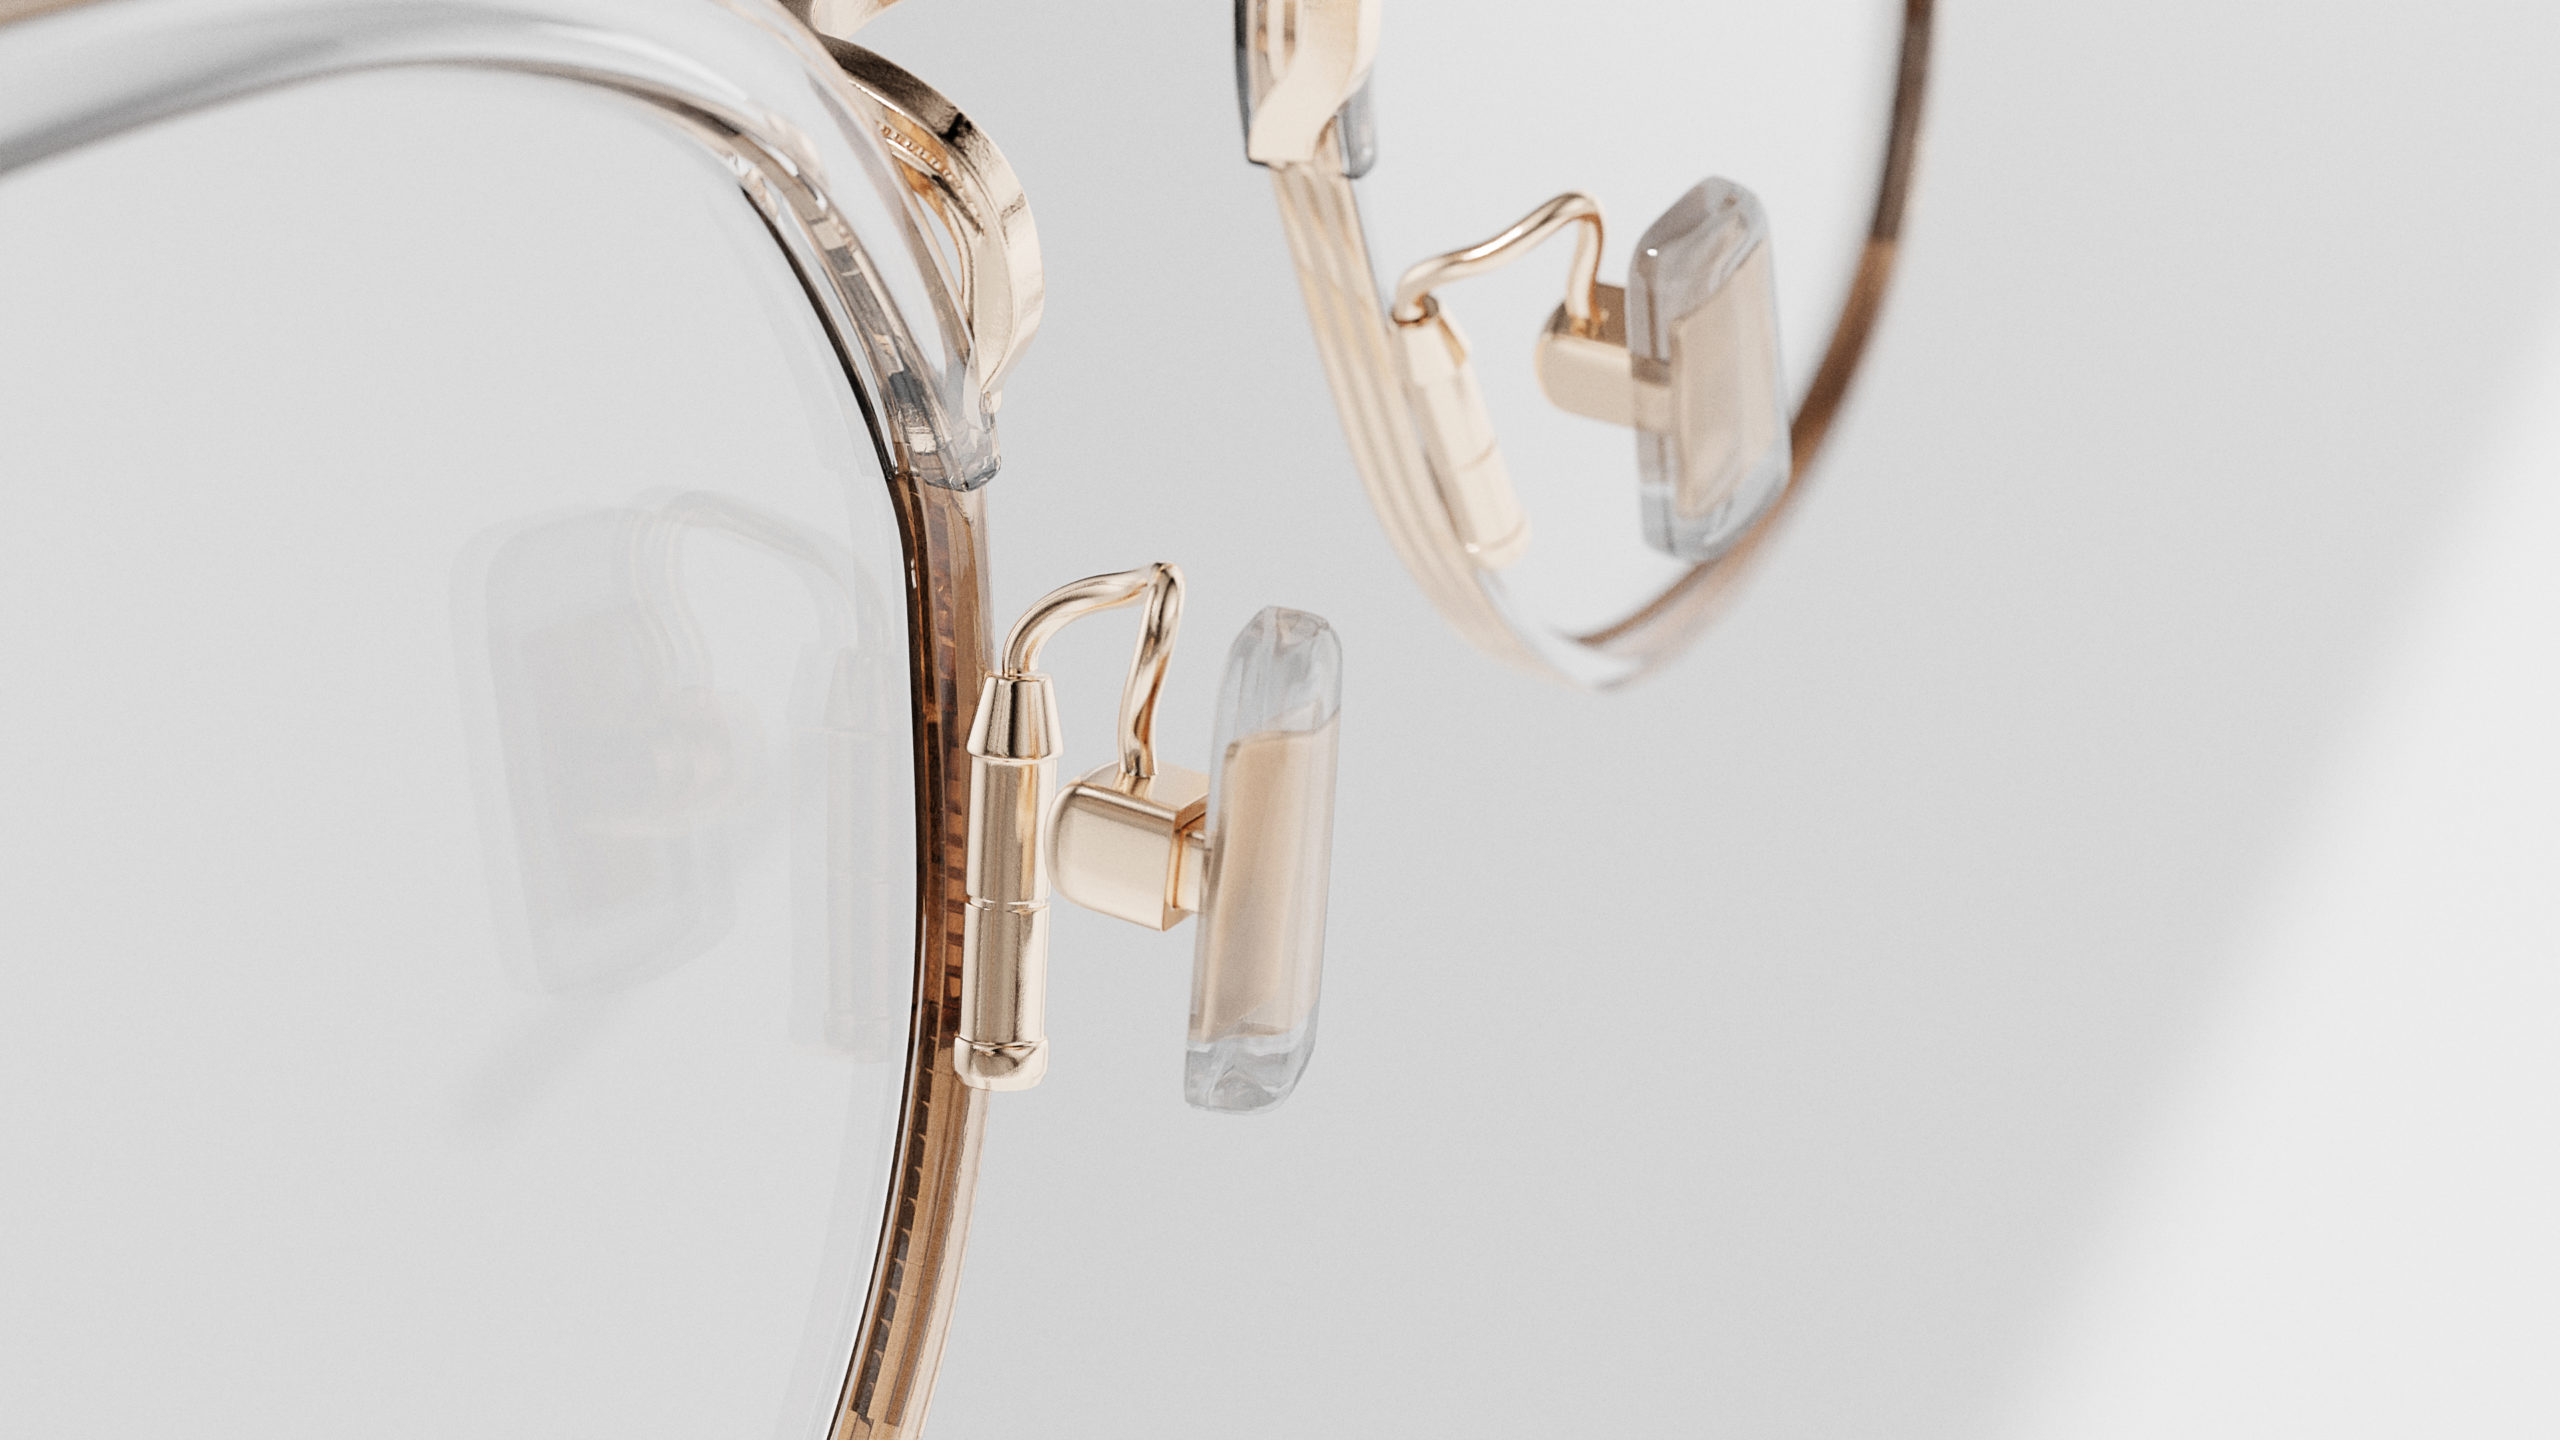 Wenbo-CGI-Project-with-HUAWEI-Gentle-Monster-Glasses-Product-Detail-Image